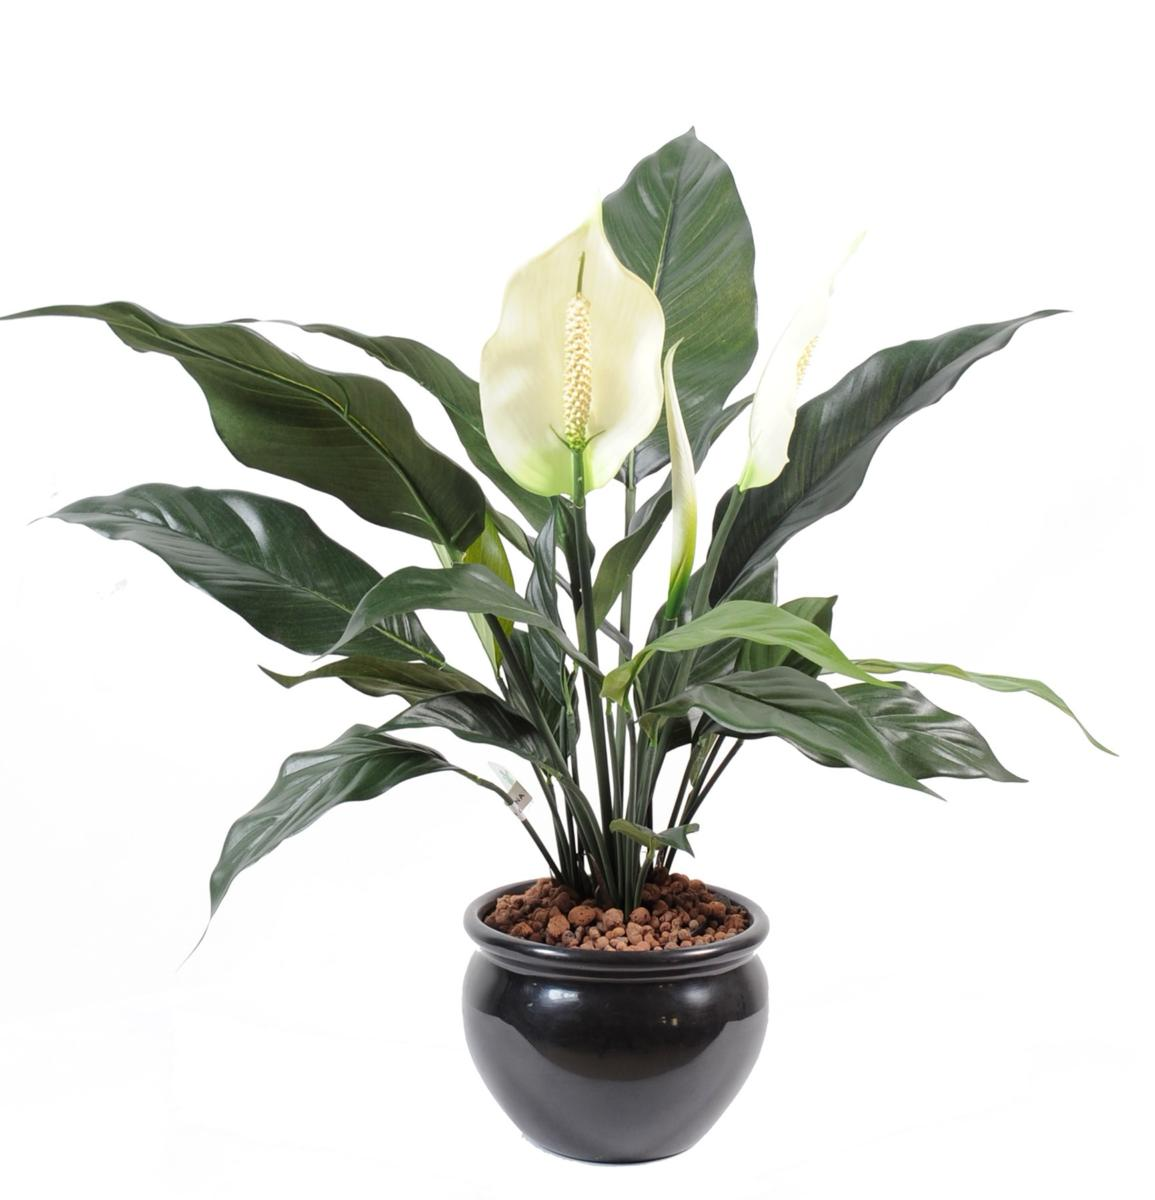 Plante artificielle fleurie spathiphylium en pot for Pot plantes interieur